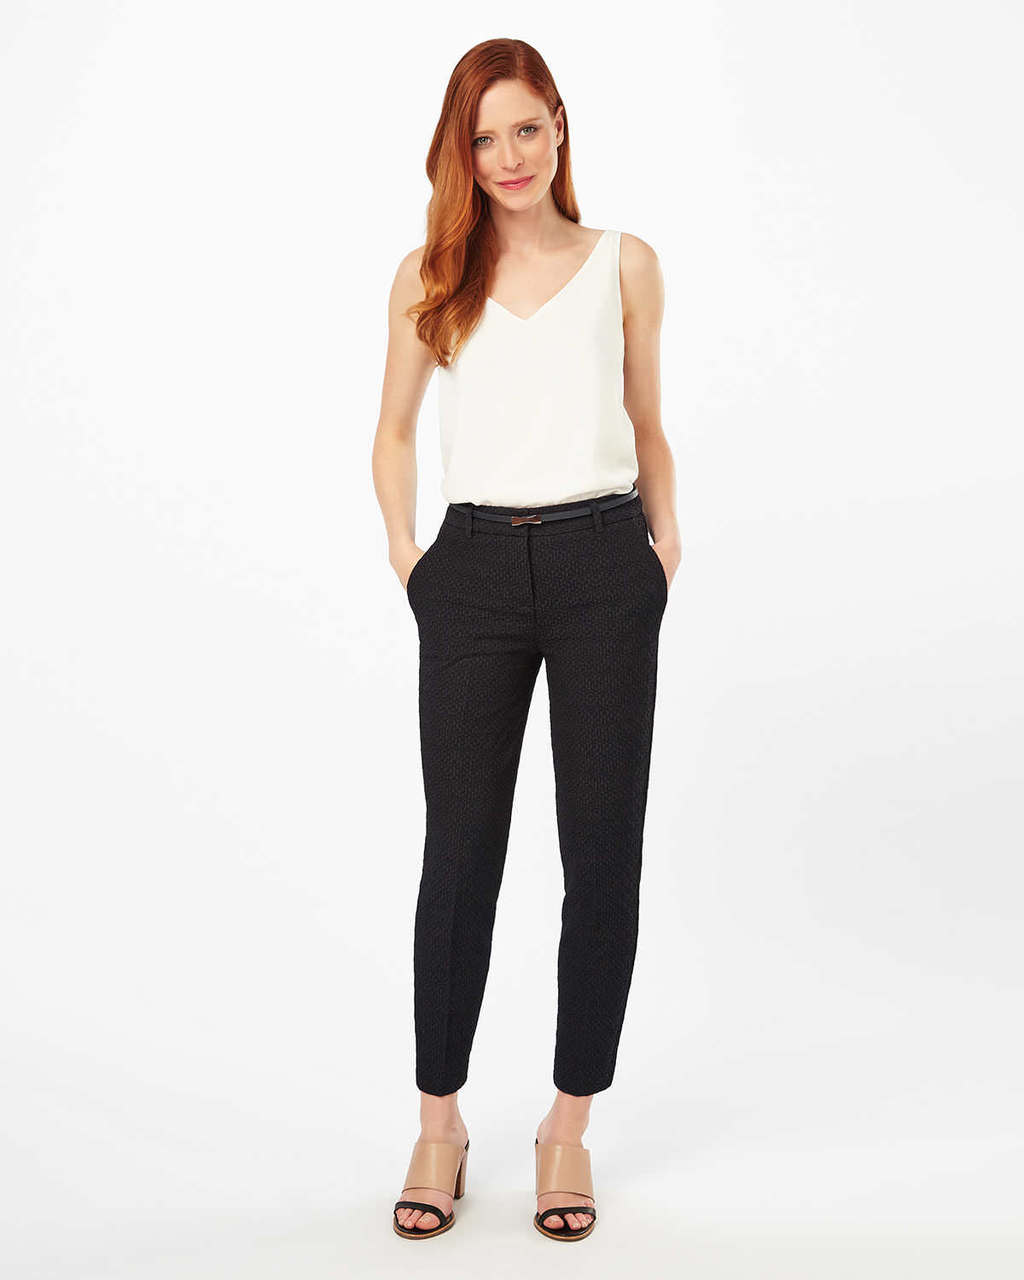 Alice Jacquard Belted Trousers - pattern: plain; waist: mid/regular rise; predominant colour: black; occasions: work, creative work; length: ankle length; fibres: cotton - 100%; fit: slim leg; pattern type: fabric; texture group: brocade/jacquard; style: standard; season: s/s 2016; wardrobe: basic